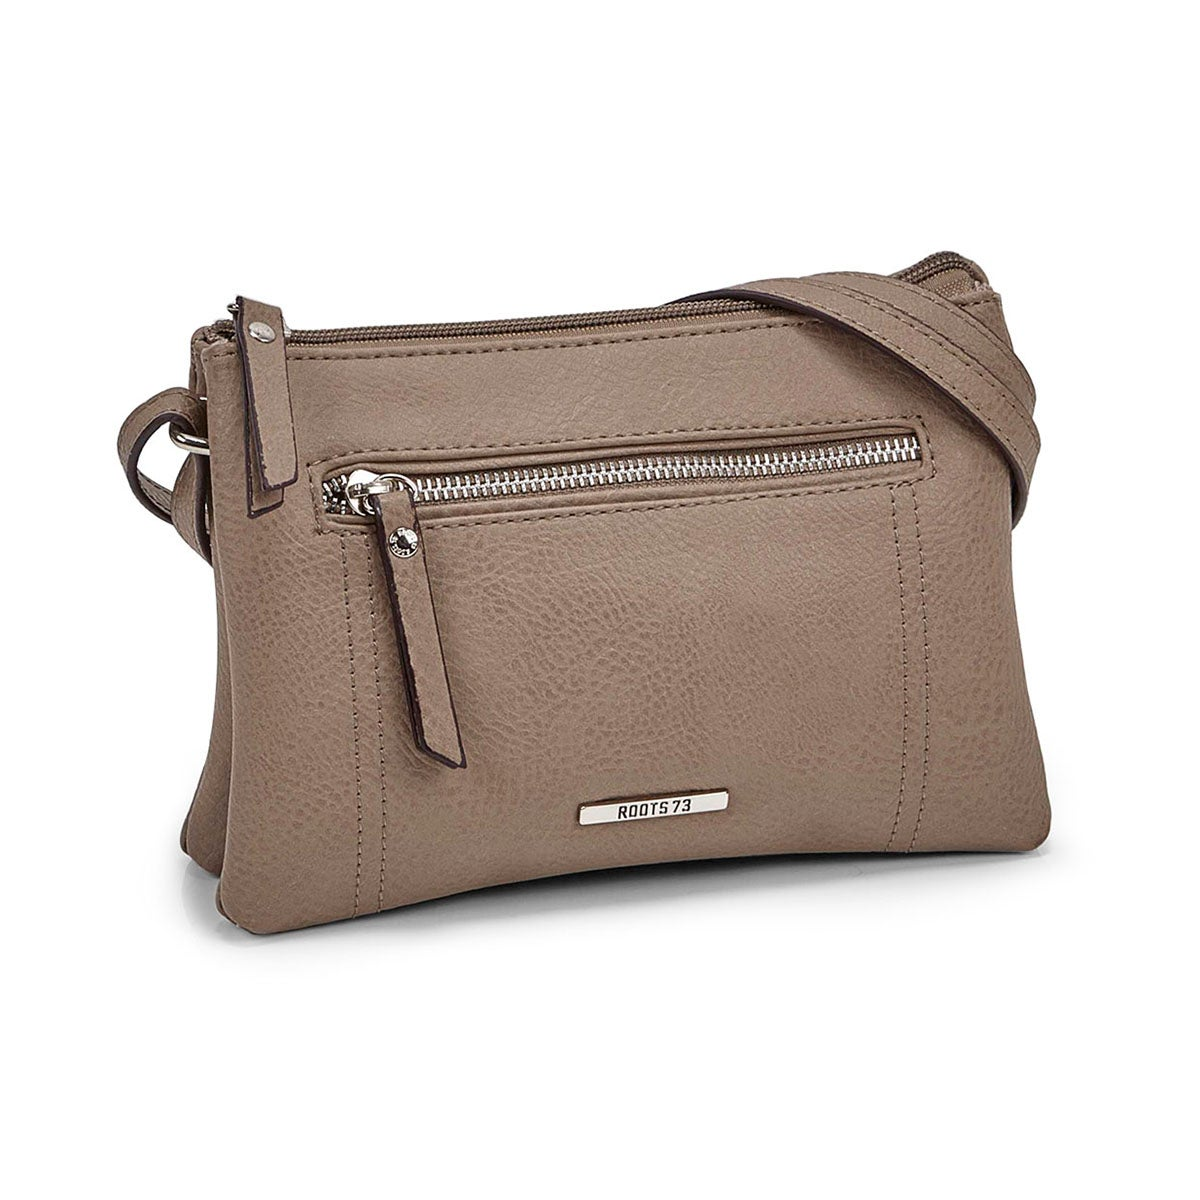 Lds taupe 2 compartment mini cross body